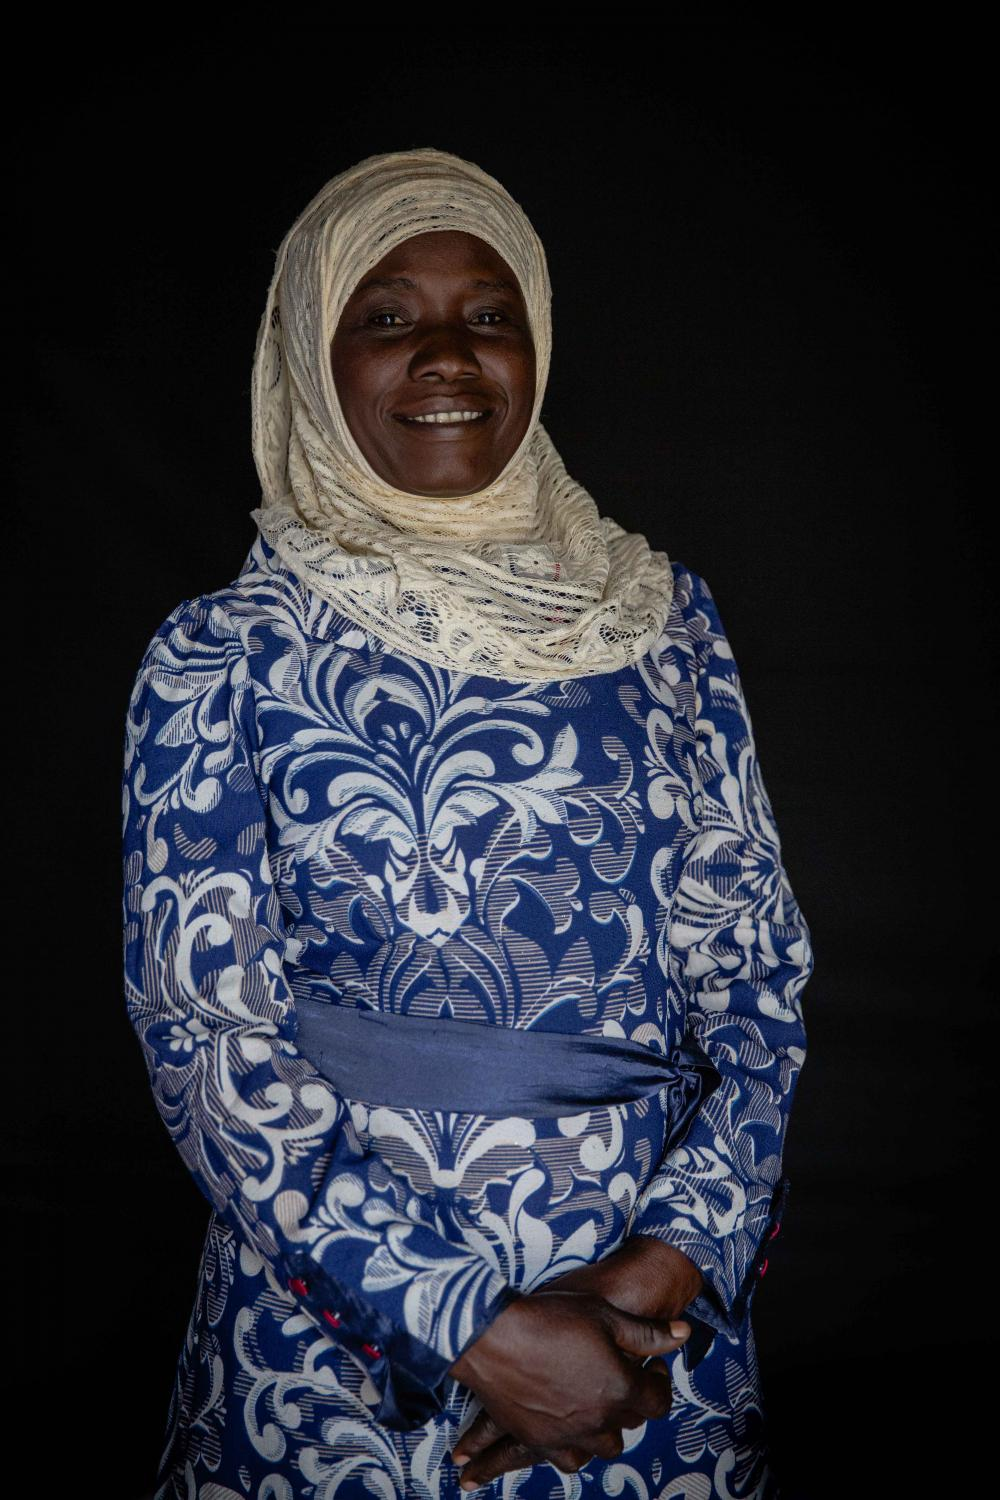 Zainab Ojaku, a nurse and mother of four, is a member of Yumbe Muslim women's group. She started doing activism work to empower her daughters, she hopes for them to be confident, educated and profession women in the future. For International Rescue Committee.